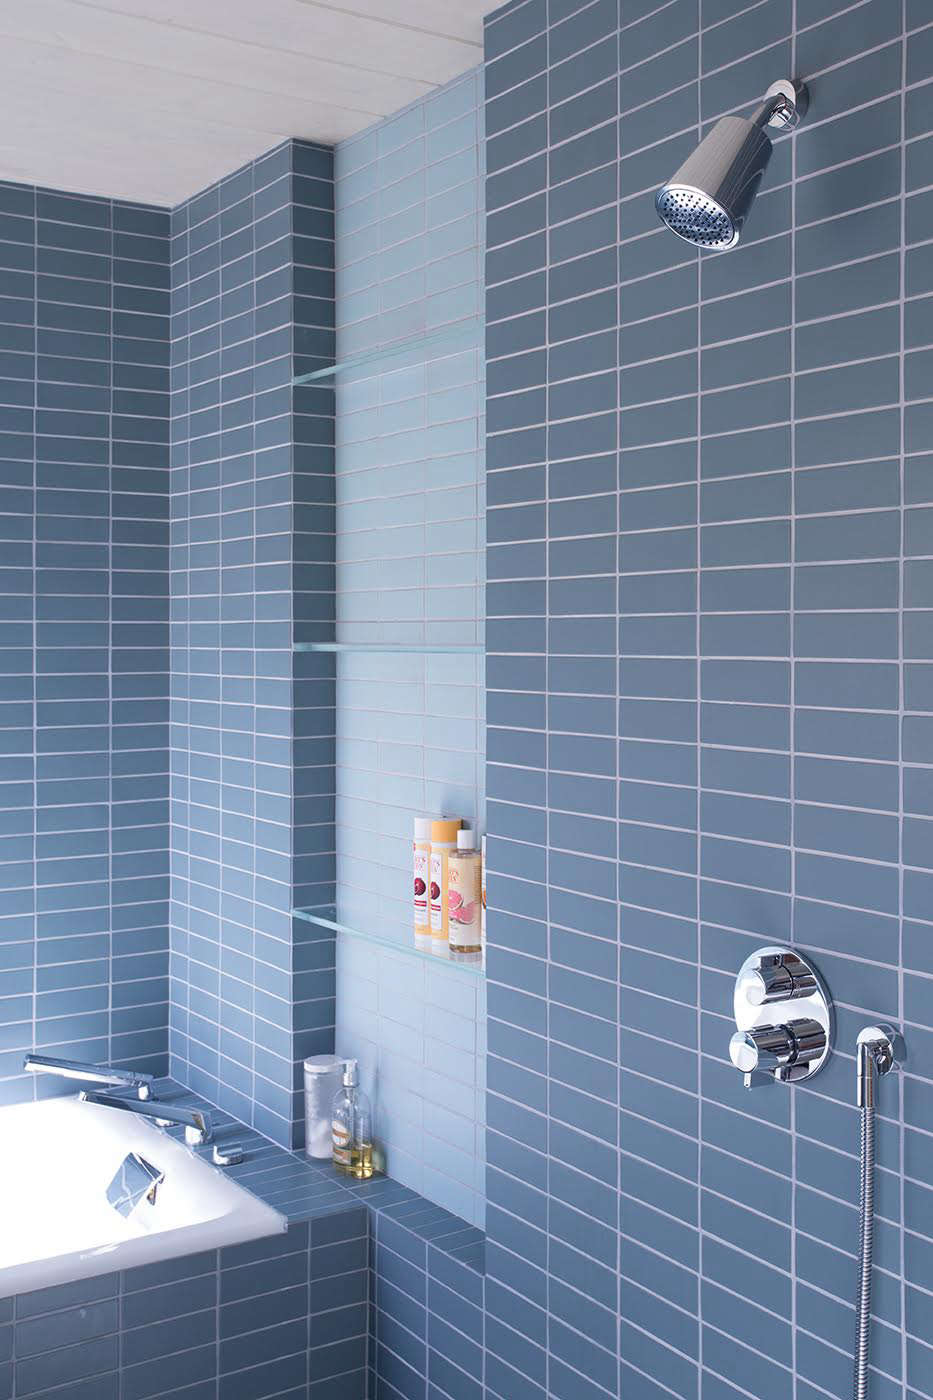 Bathroom Grout Remodeling 101 How To Choose The Right Tile Grout Remodelista